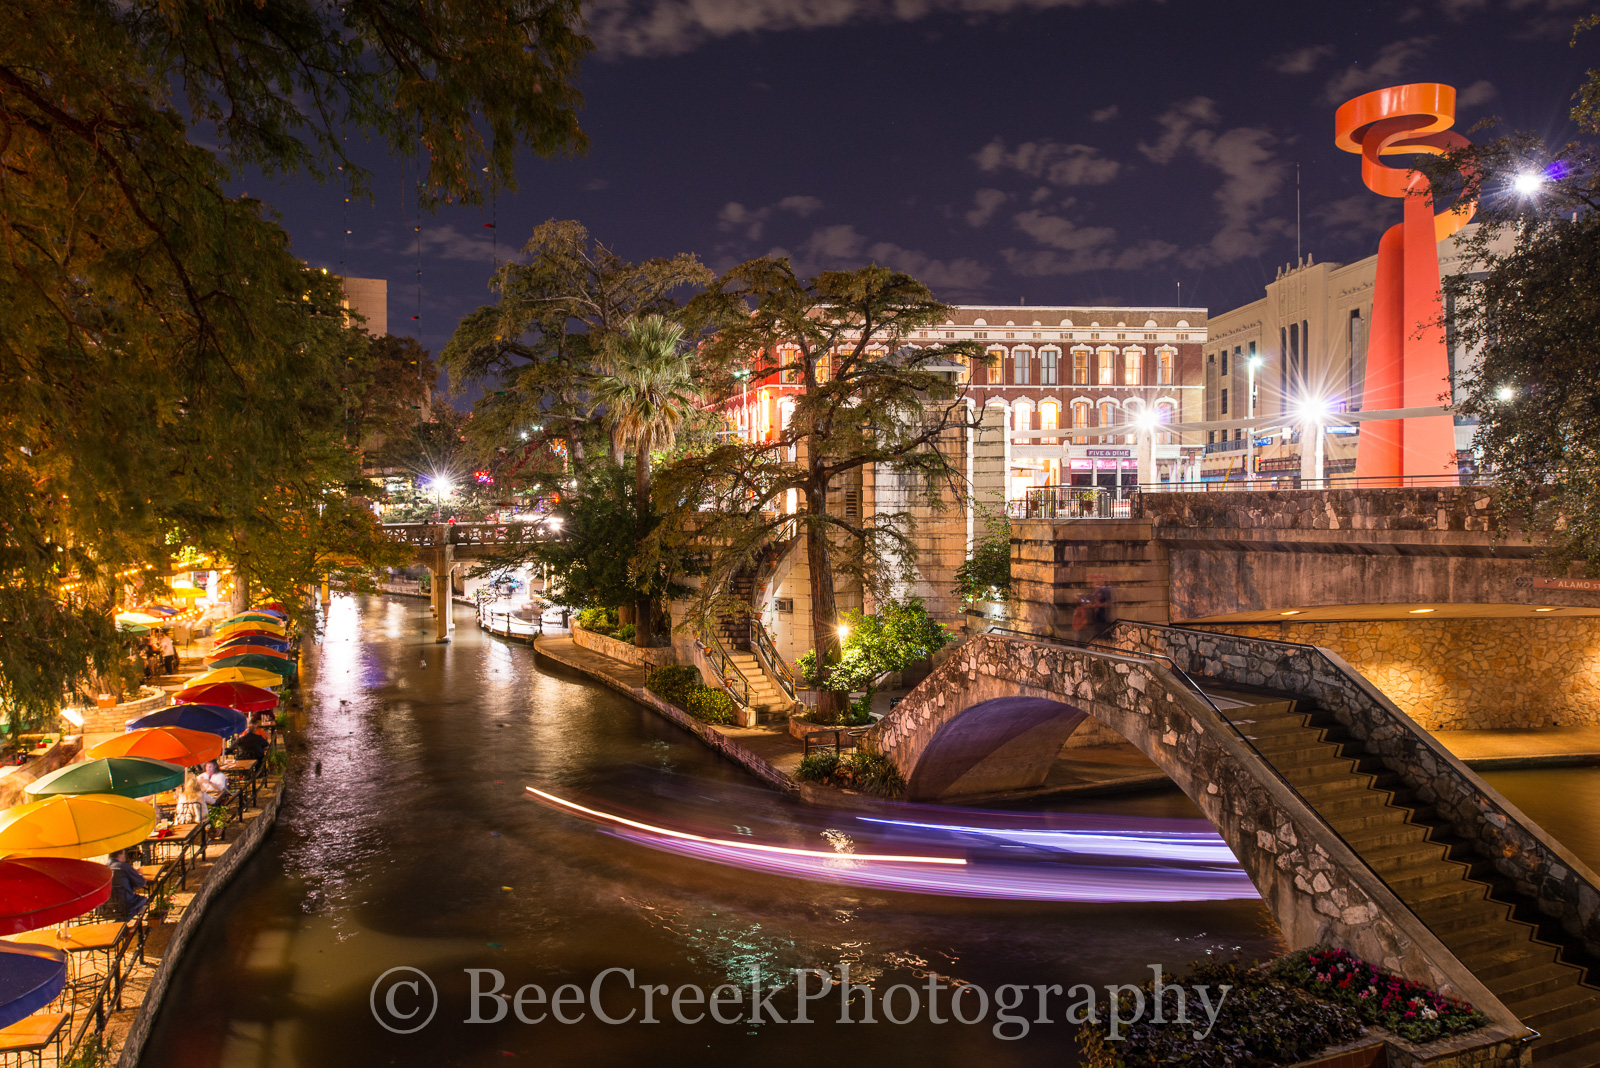 Cafe Ole, Light Trails, River Walk, San Antonio, Torch of Friendship, boat, cityscape, colorful umbrellas, night, photo